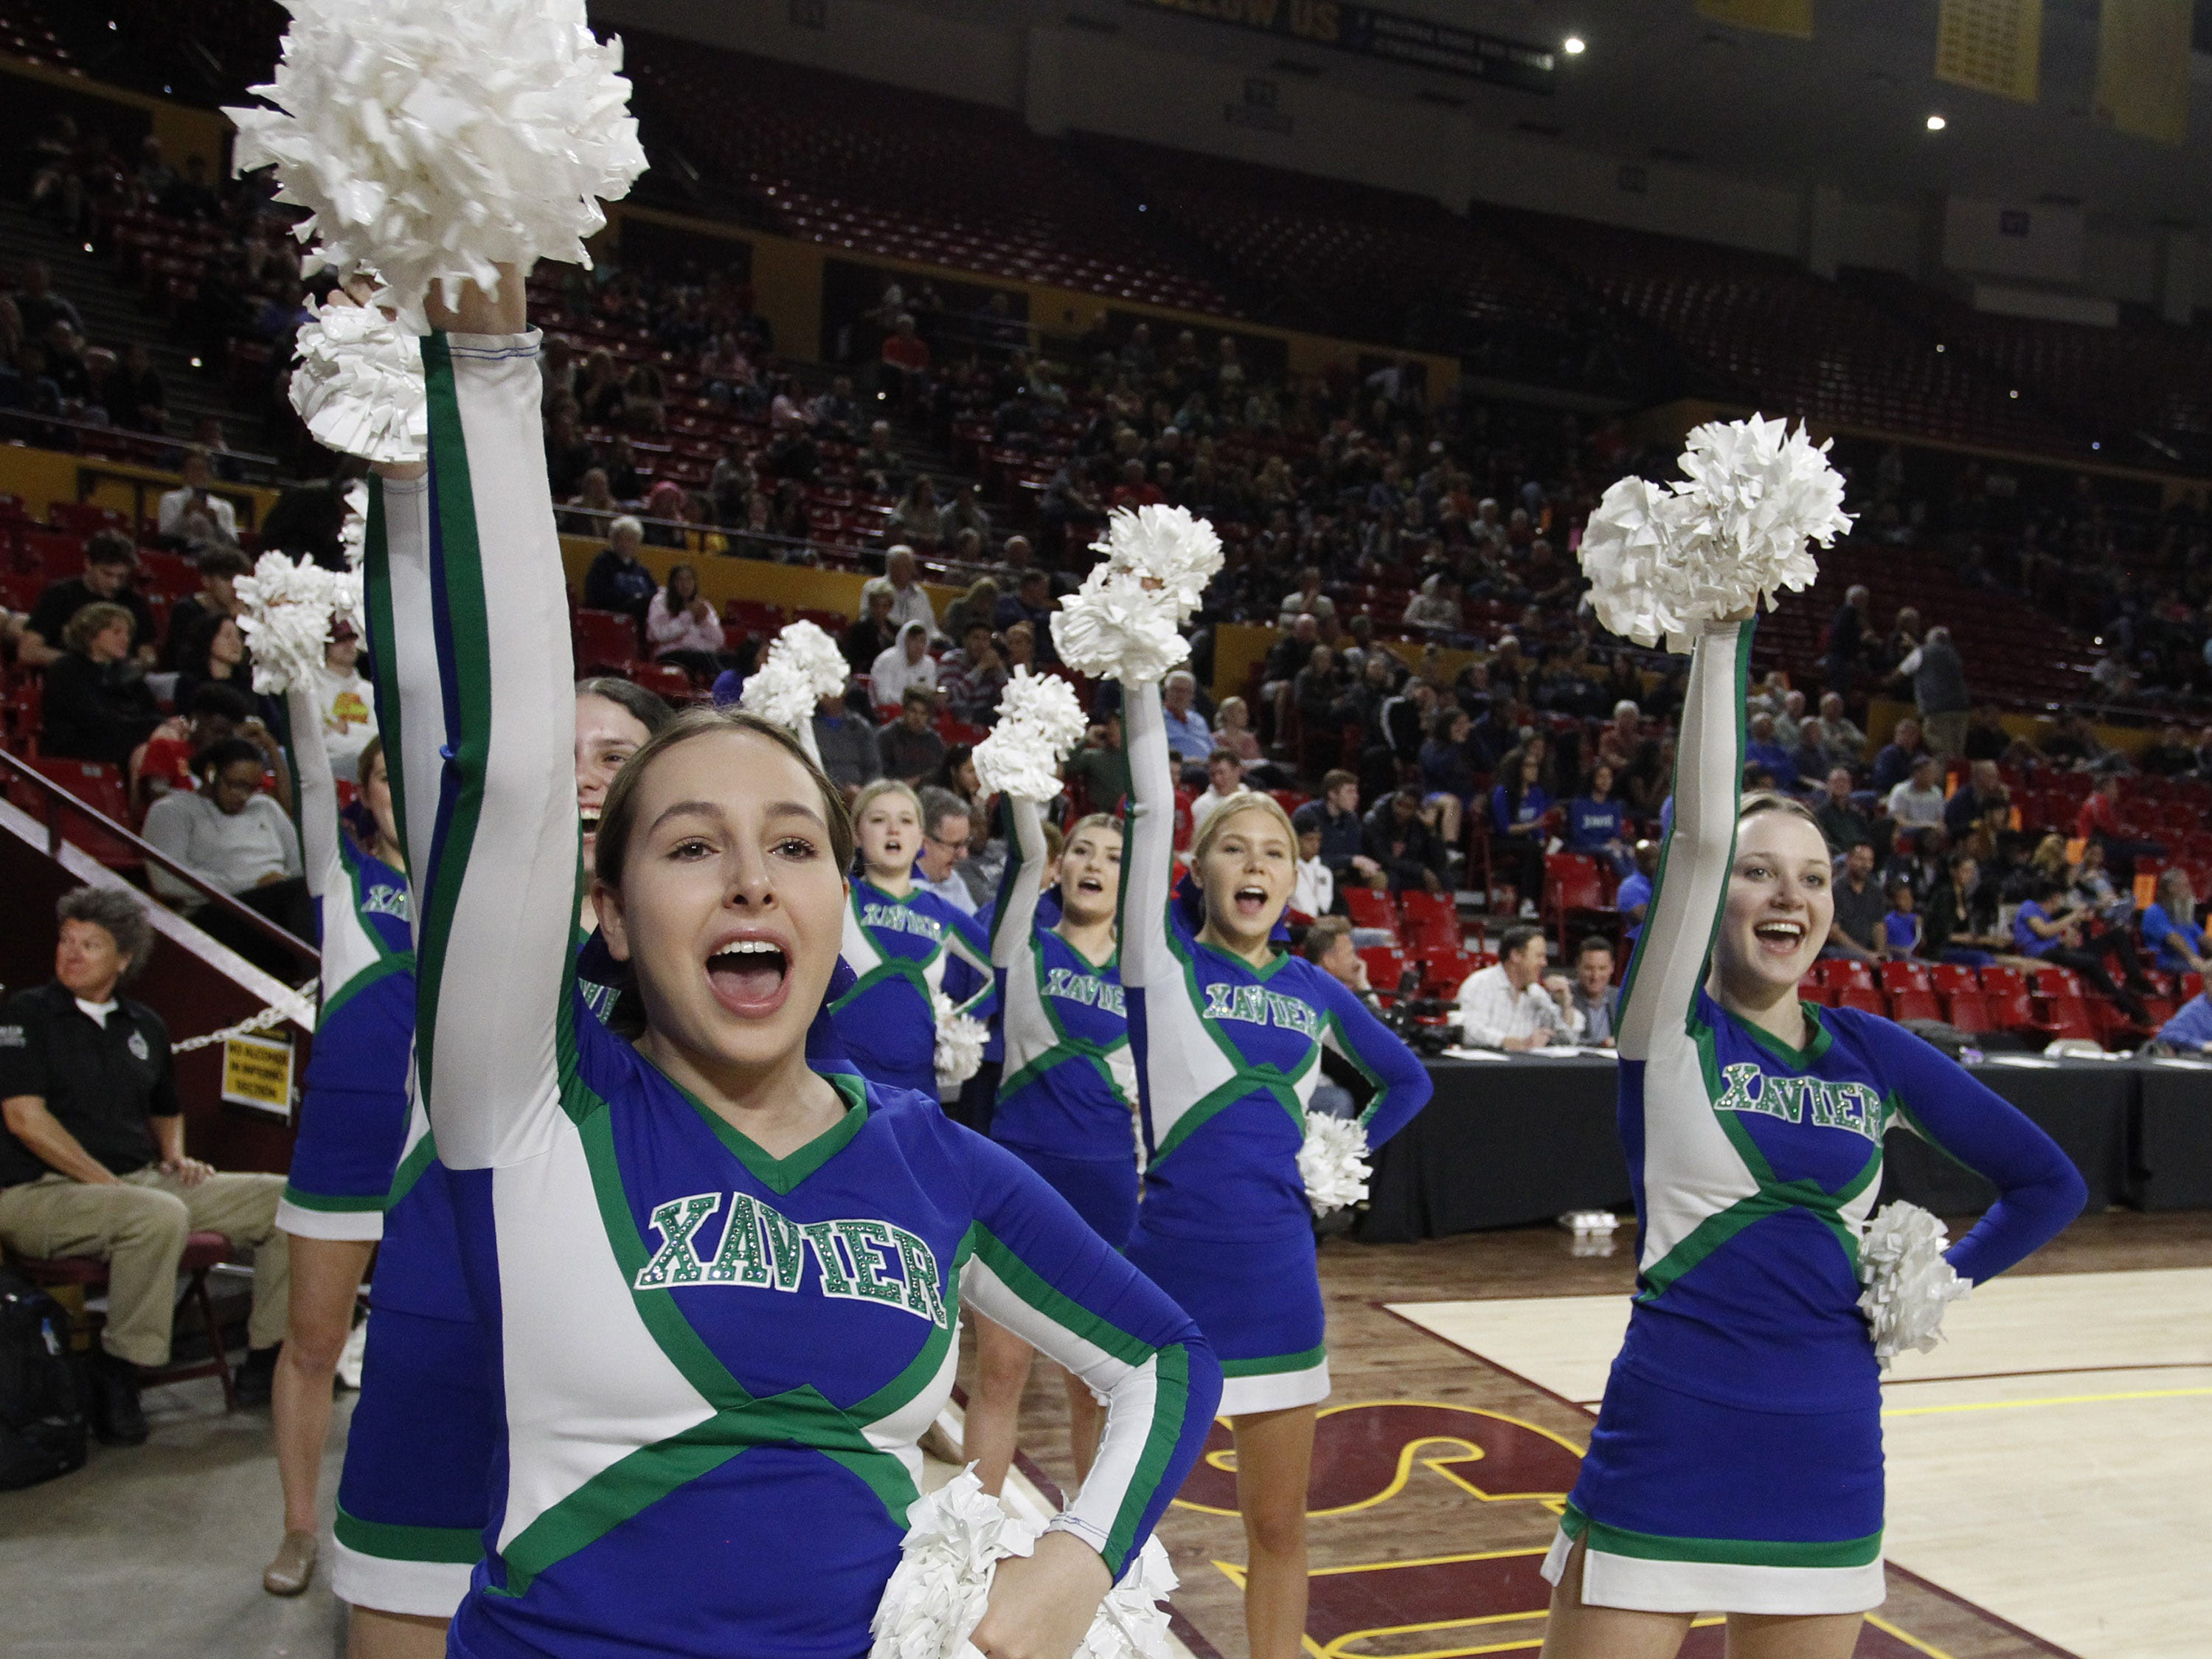 Xavier cheerleaders do their thing against Hamilton during the 6A Girls State Championship at Wells Fargo Arena in Tempe Tuesday, Feb 26, 2019.